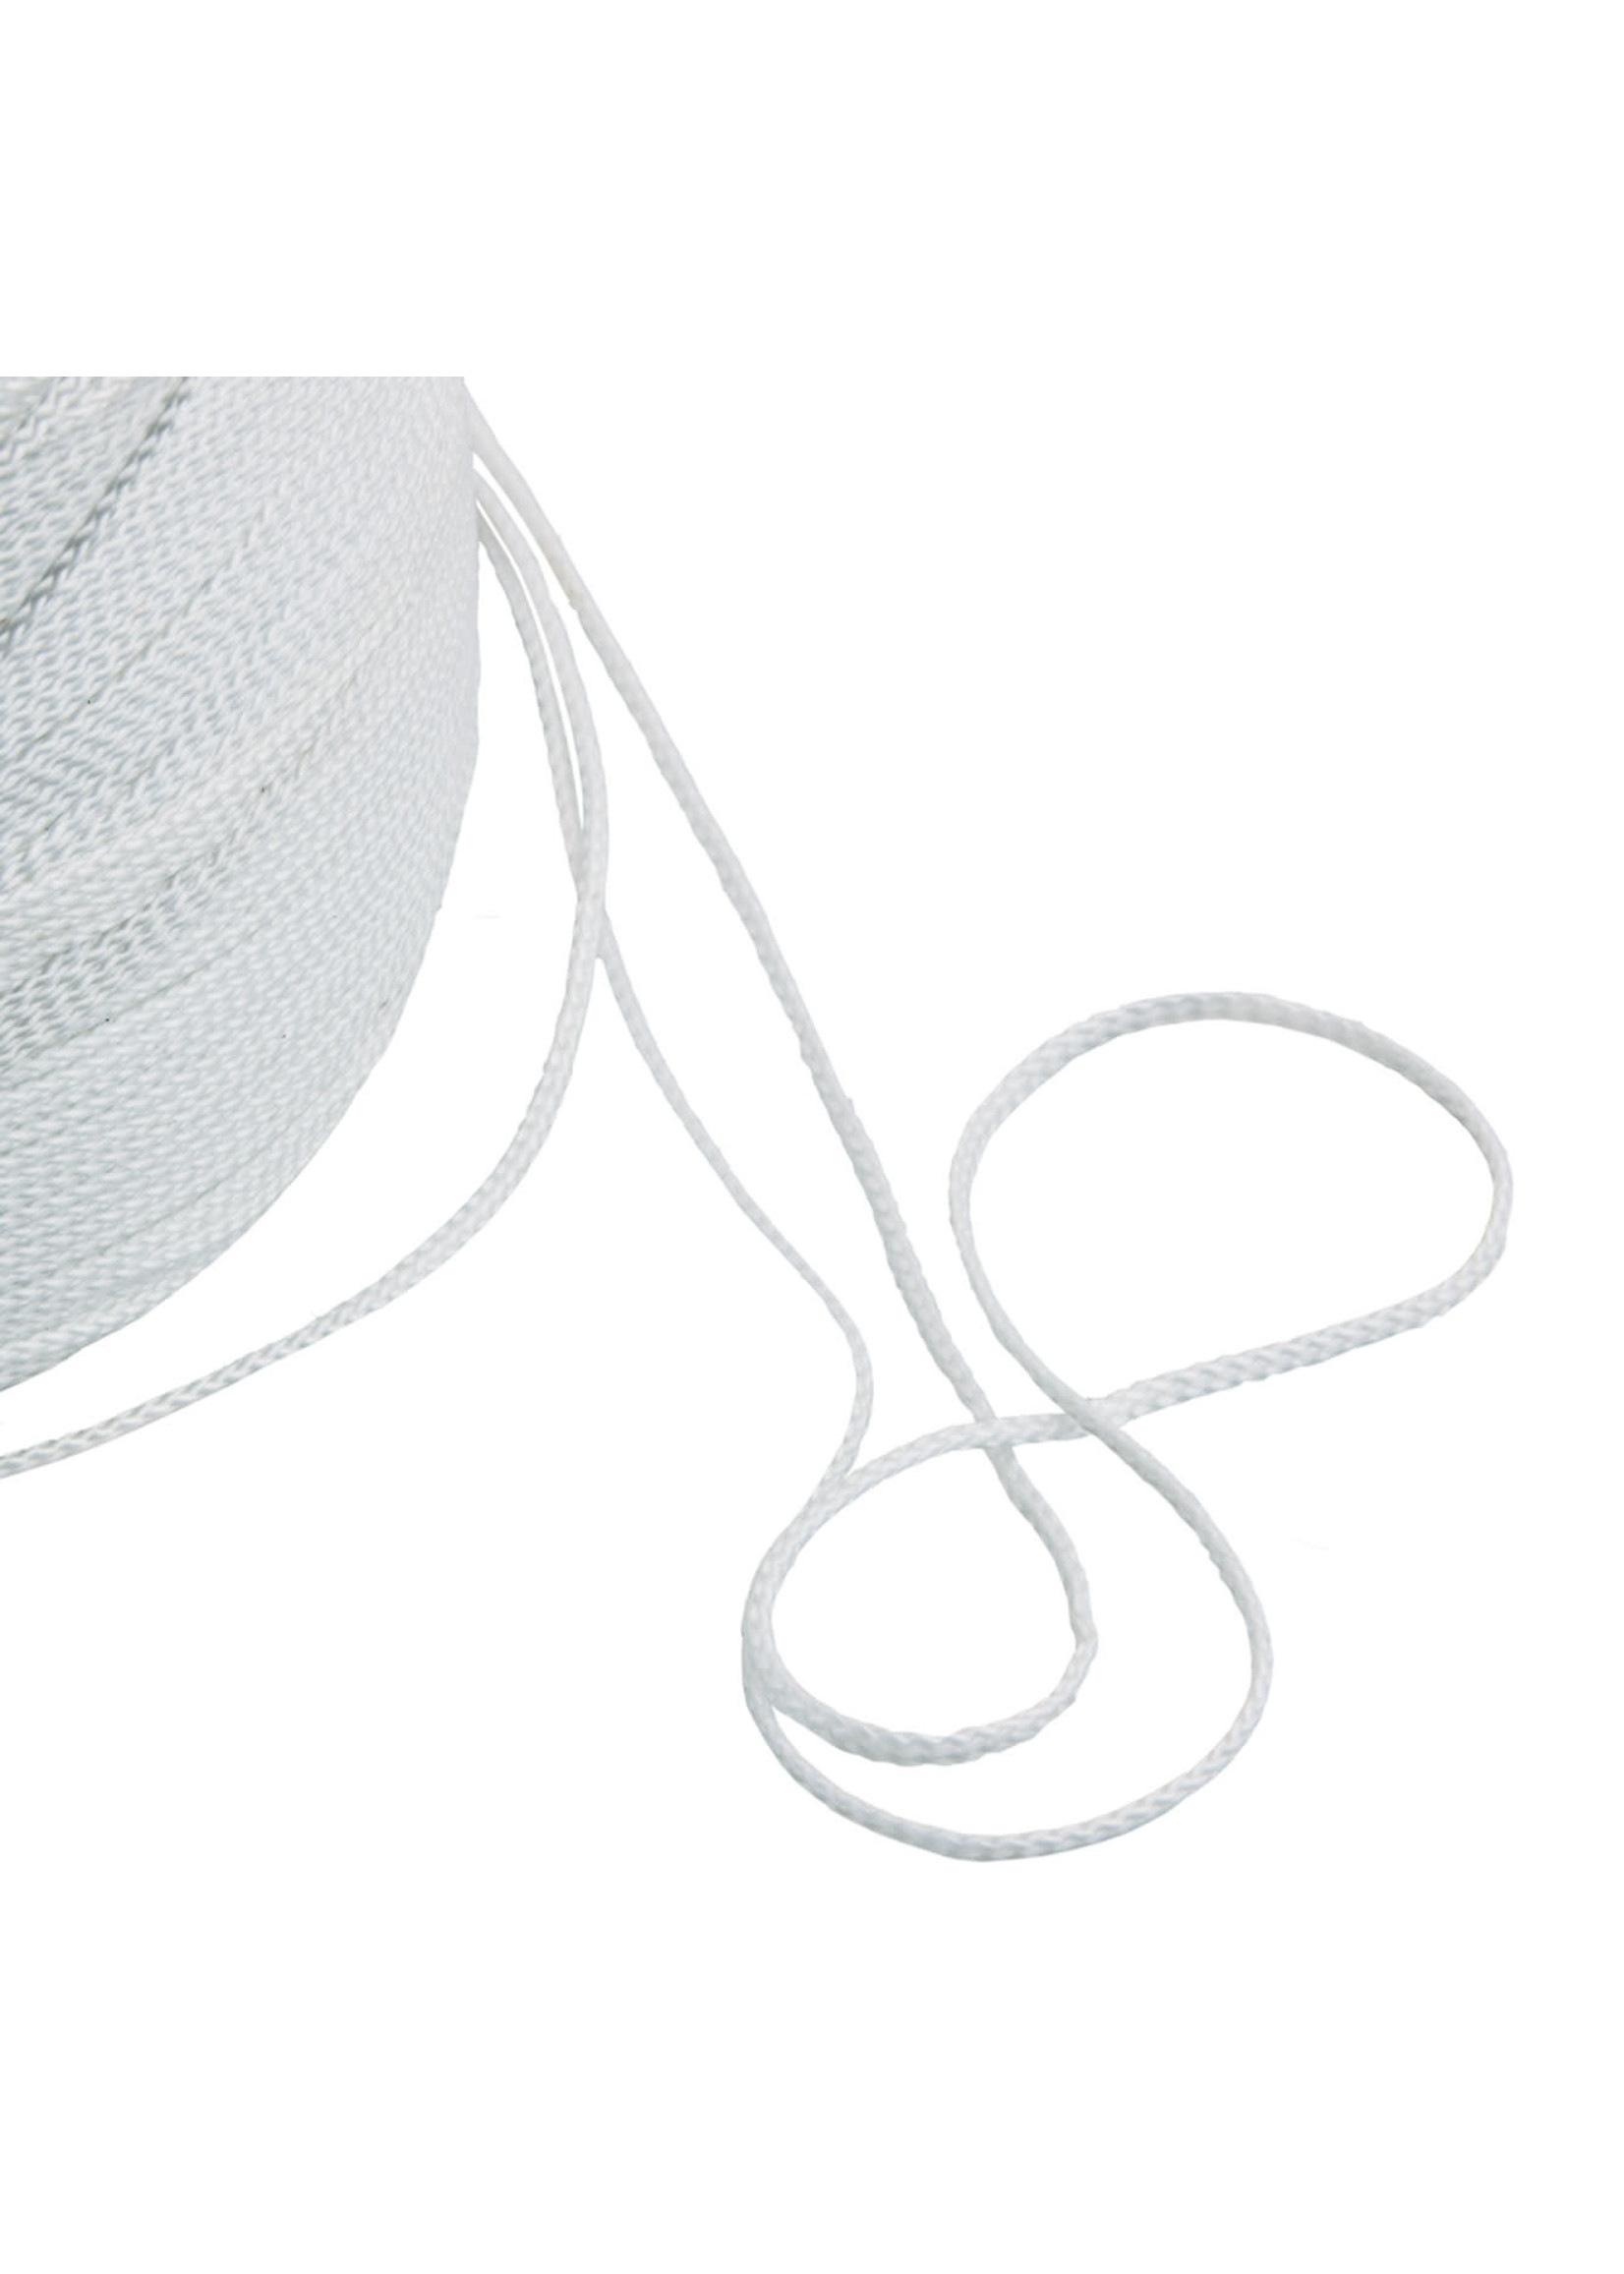 TecLine Cave line nylon cord for spools and reels - per meter